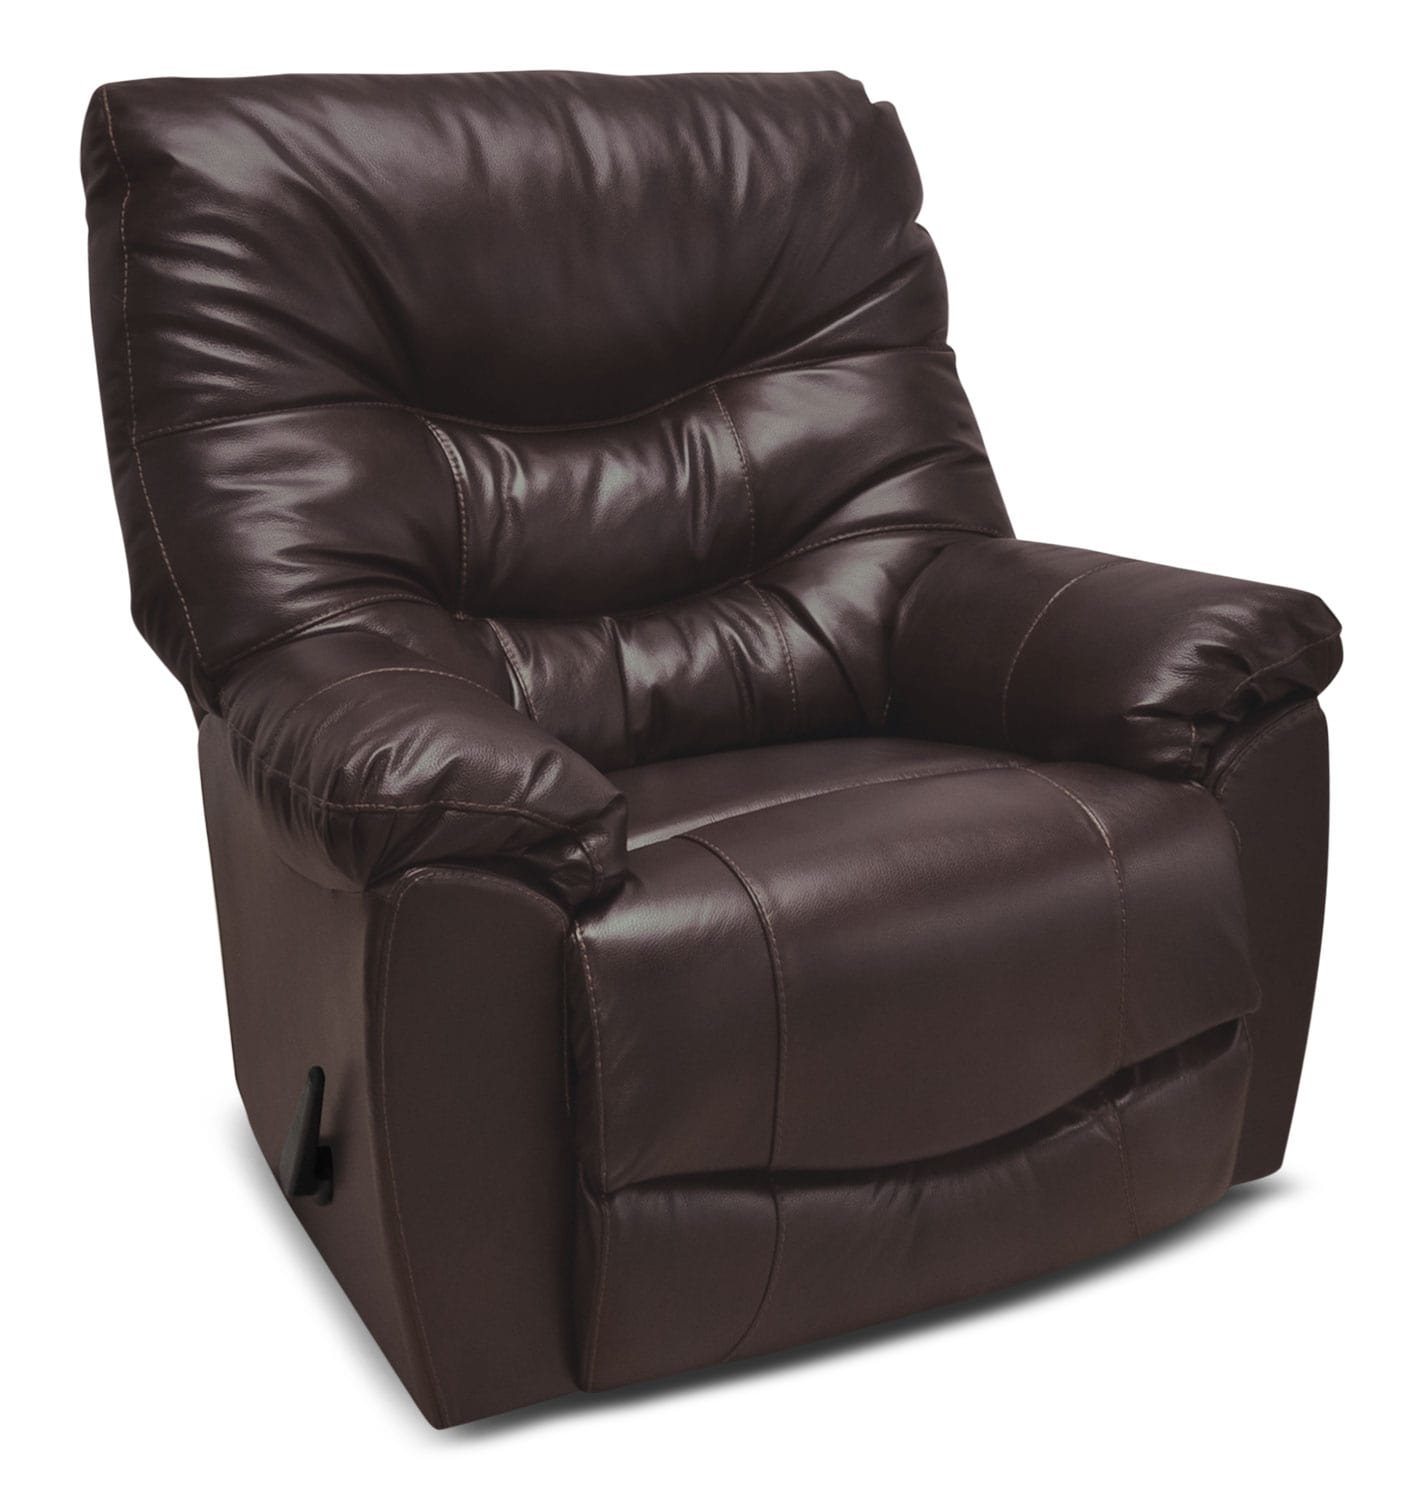 Living Room Furniture - 4595 Genuine Leather Rocker Reclining Chair – Espresso